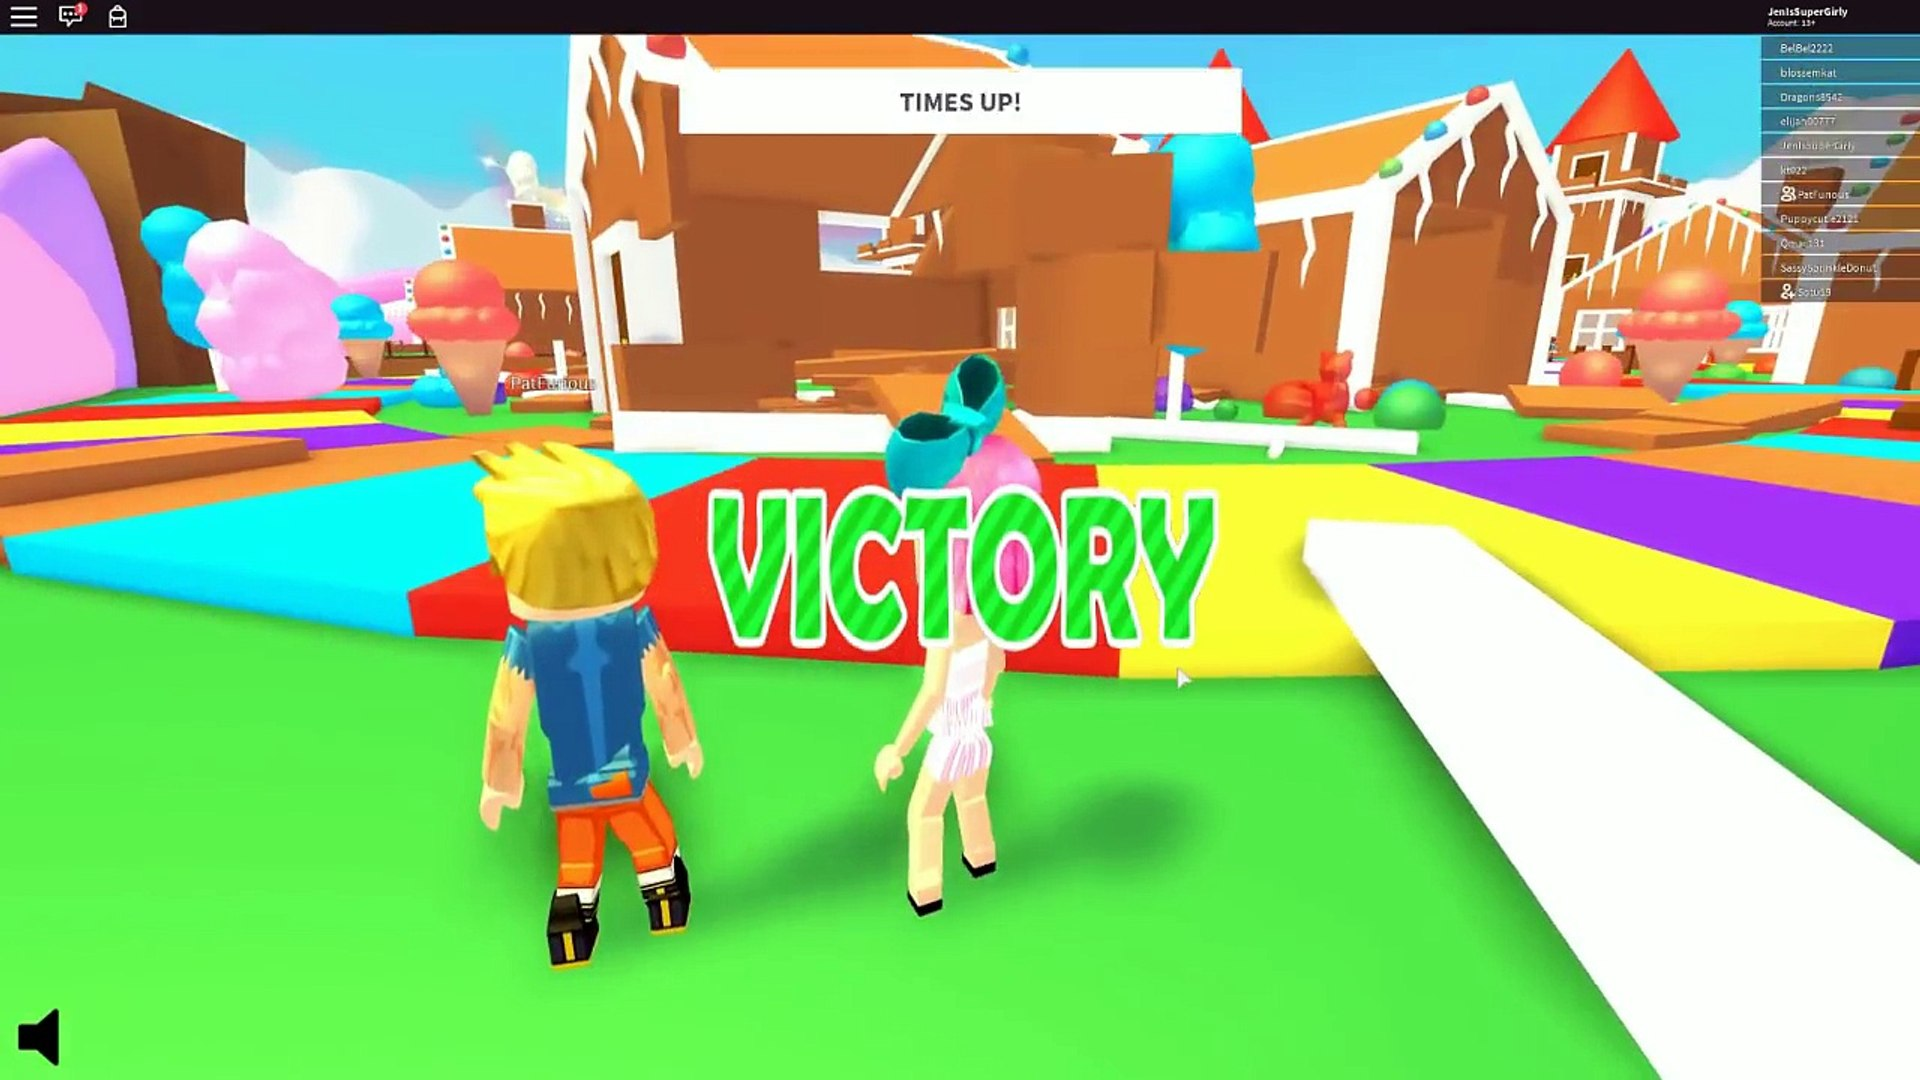 Roblox Become A Giant And Eat People Dailymotion Video